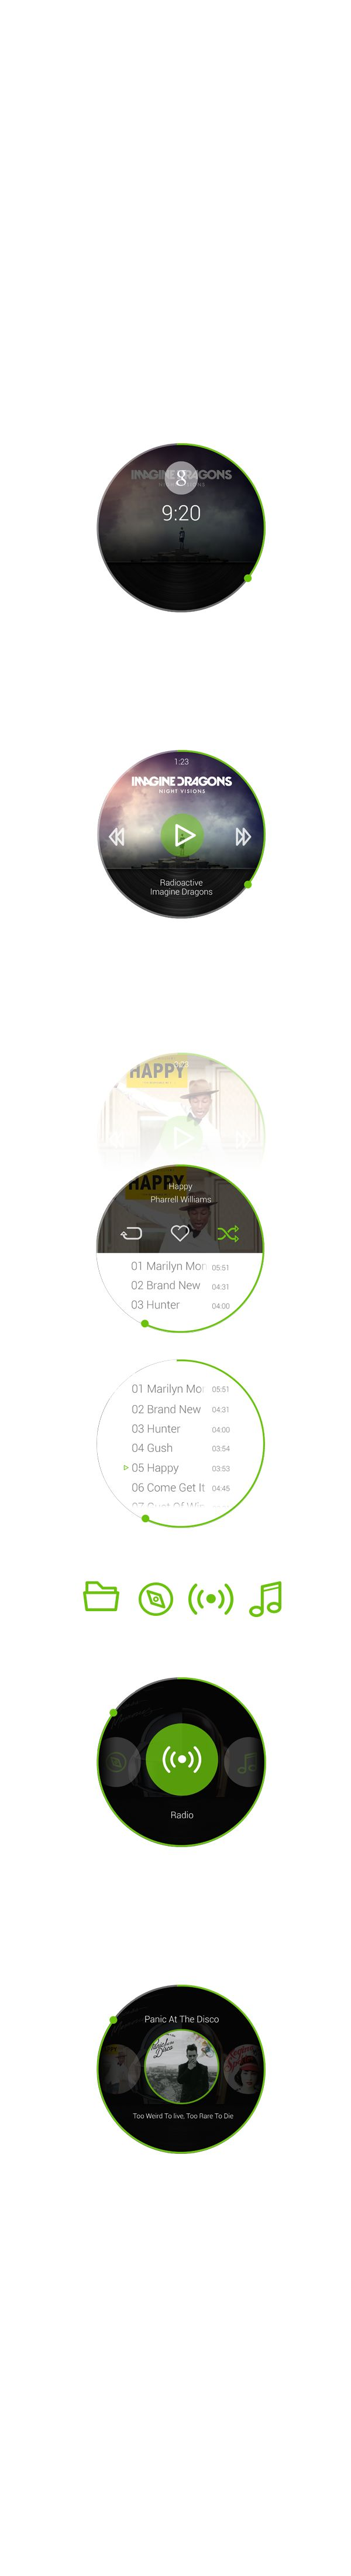 Spotify - Android Wear App on Behance